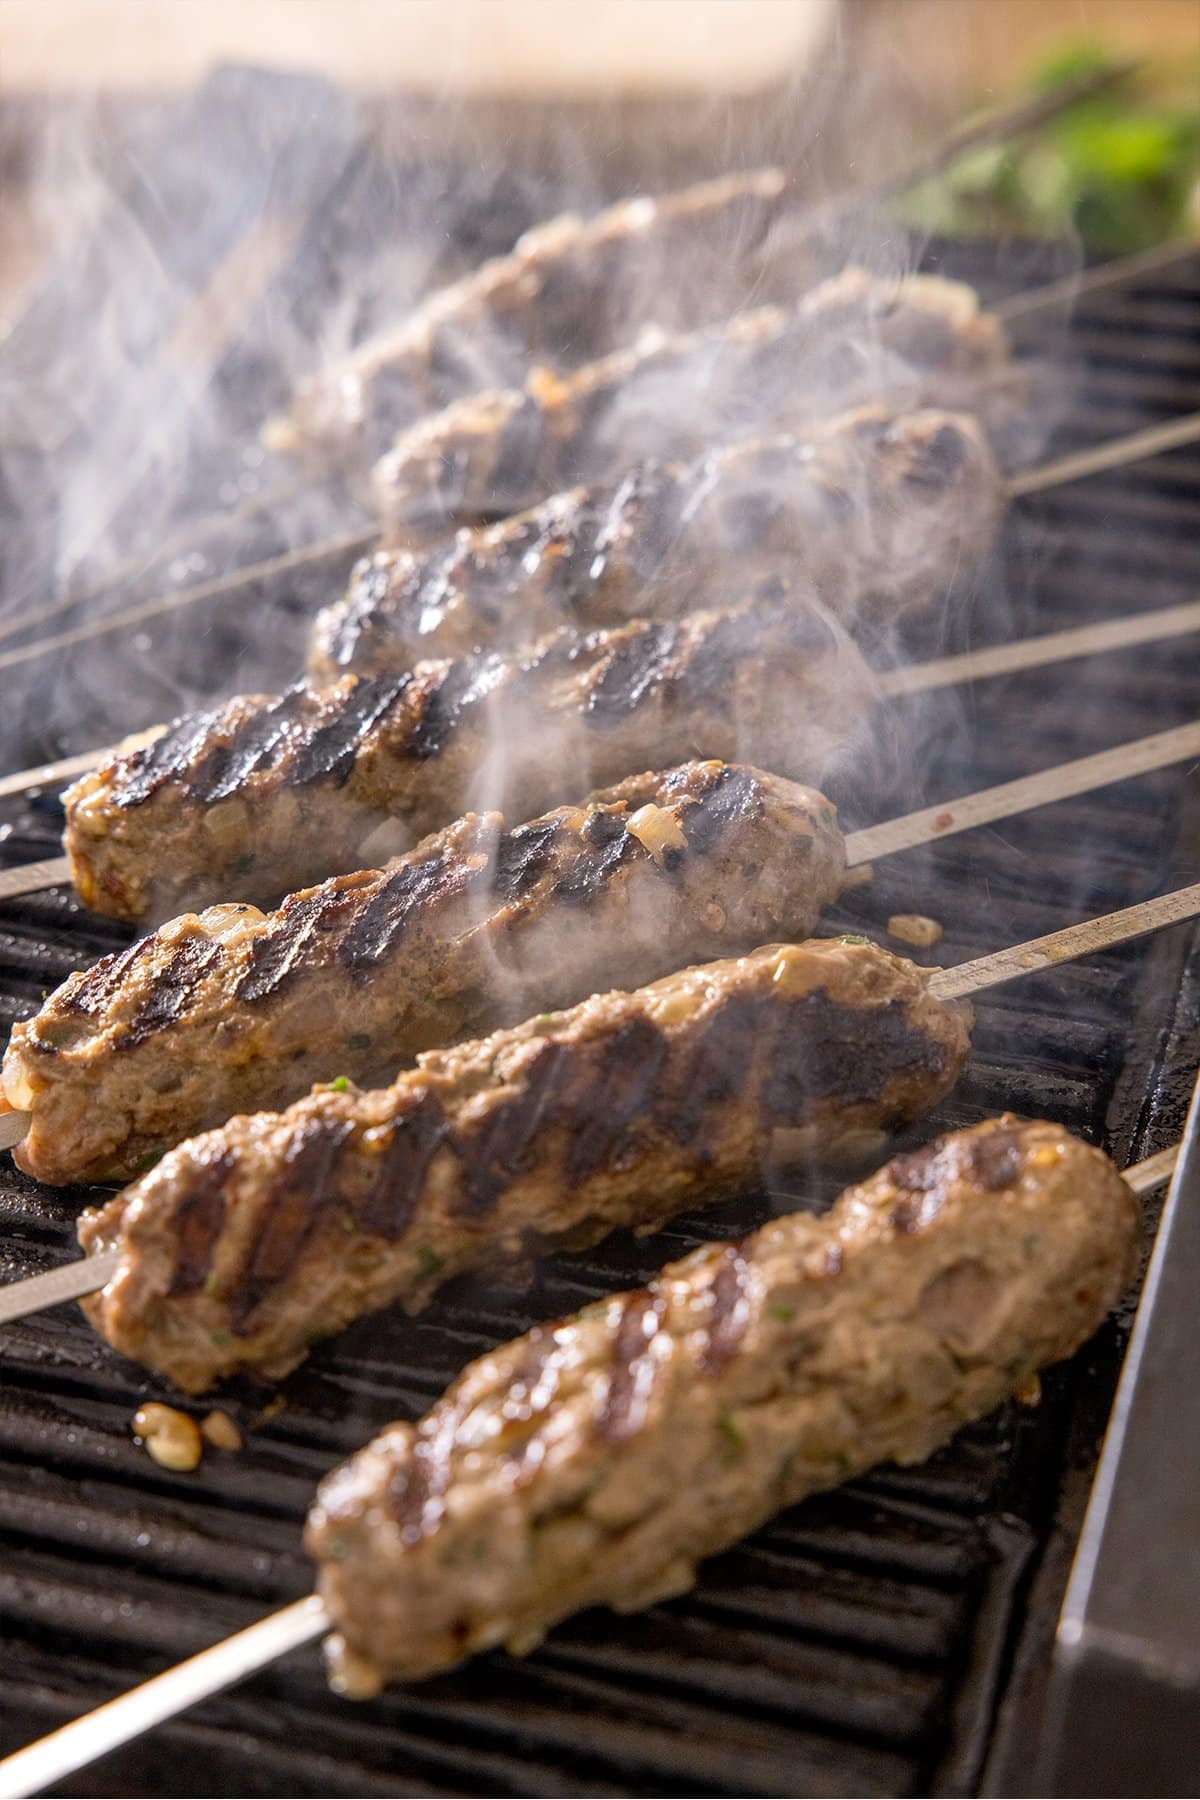 Lamb koftas being cooked on a griddle with steam rising.